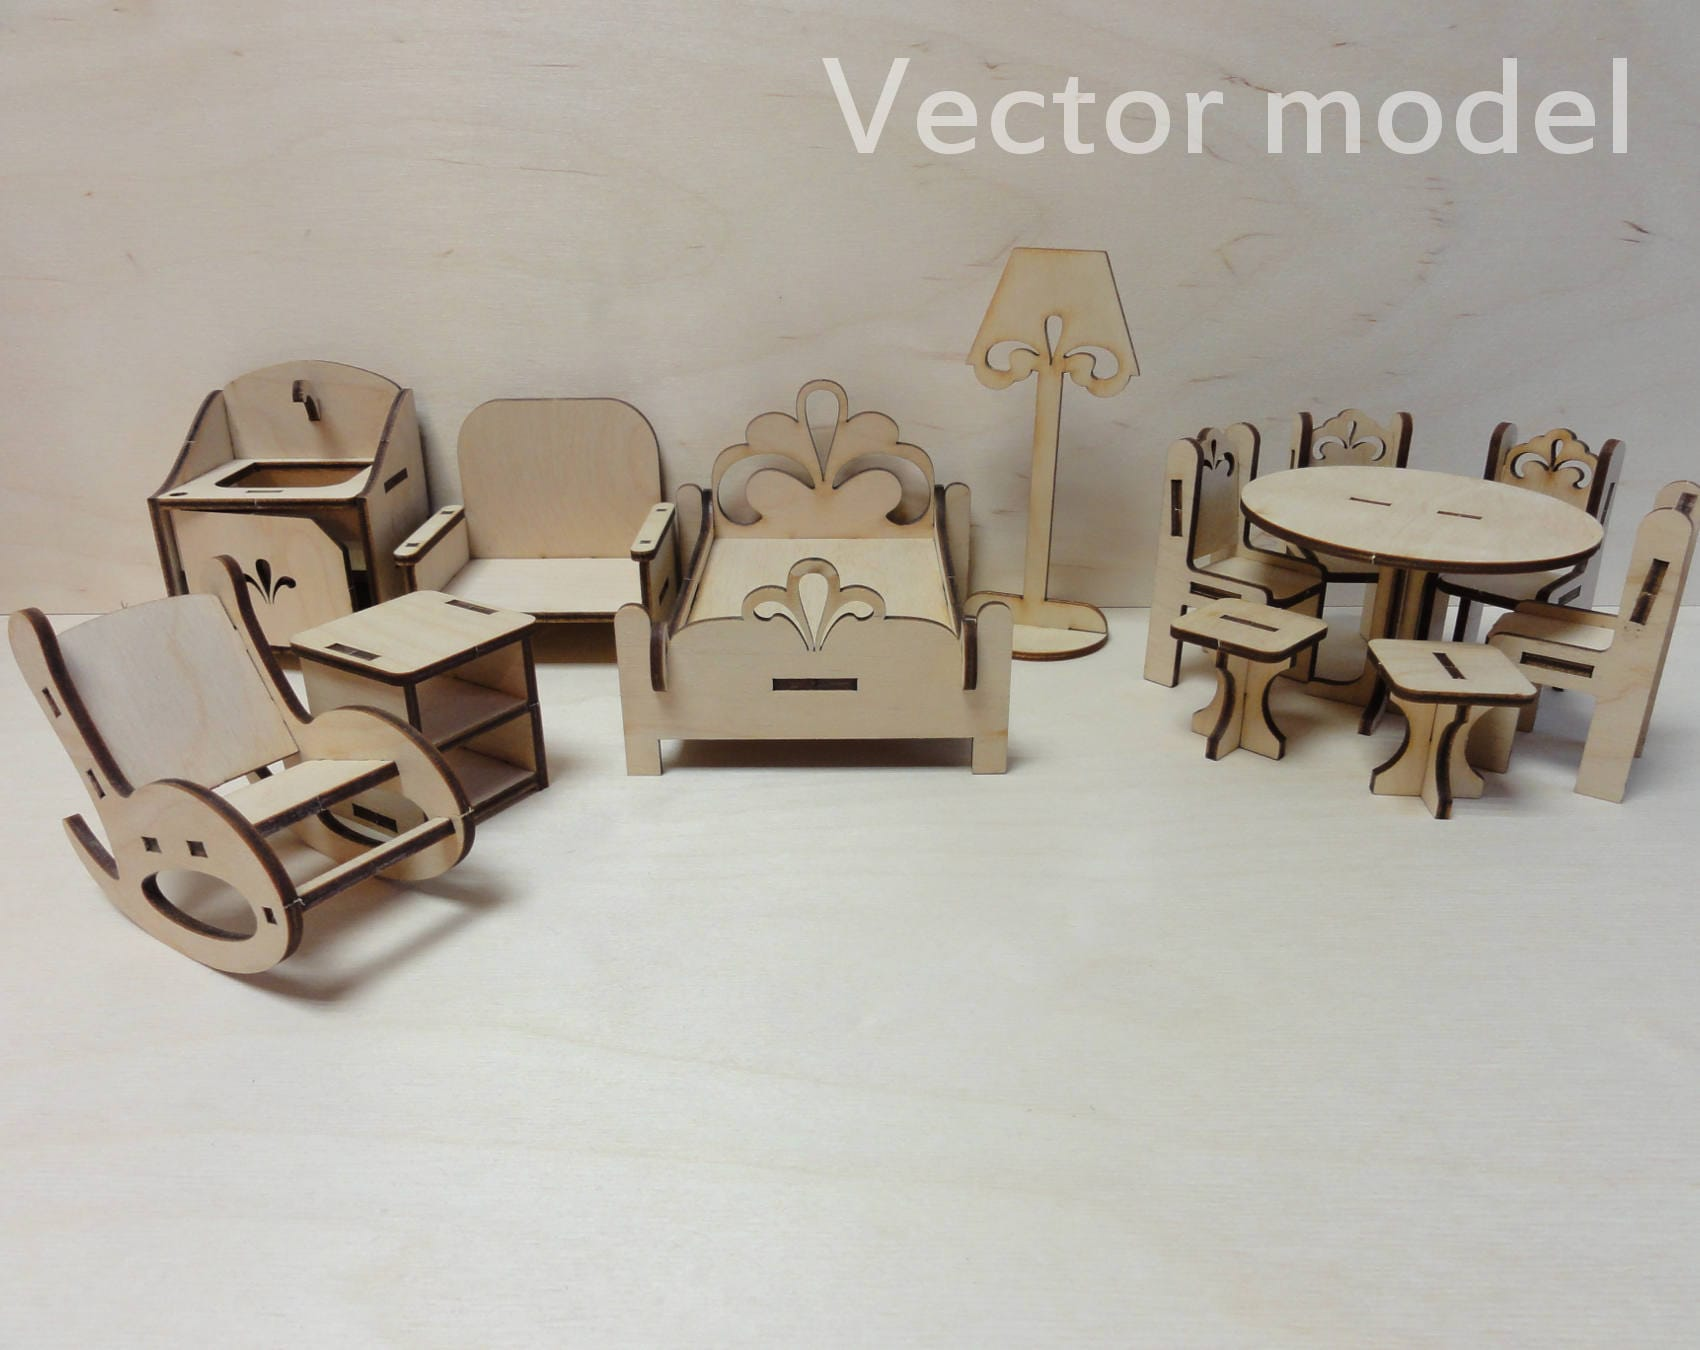 Dolls Furniture Drawing, Toy Furniture Vector Plan, Laser Cut Vector Model,  Vector Template For Laser Cutting, Cnc File, Instant Download